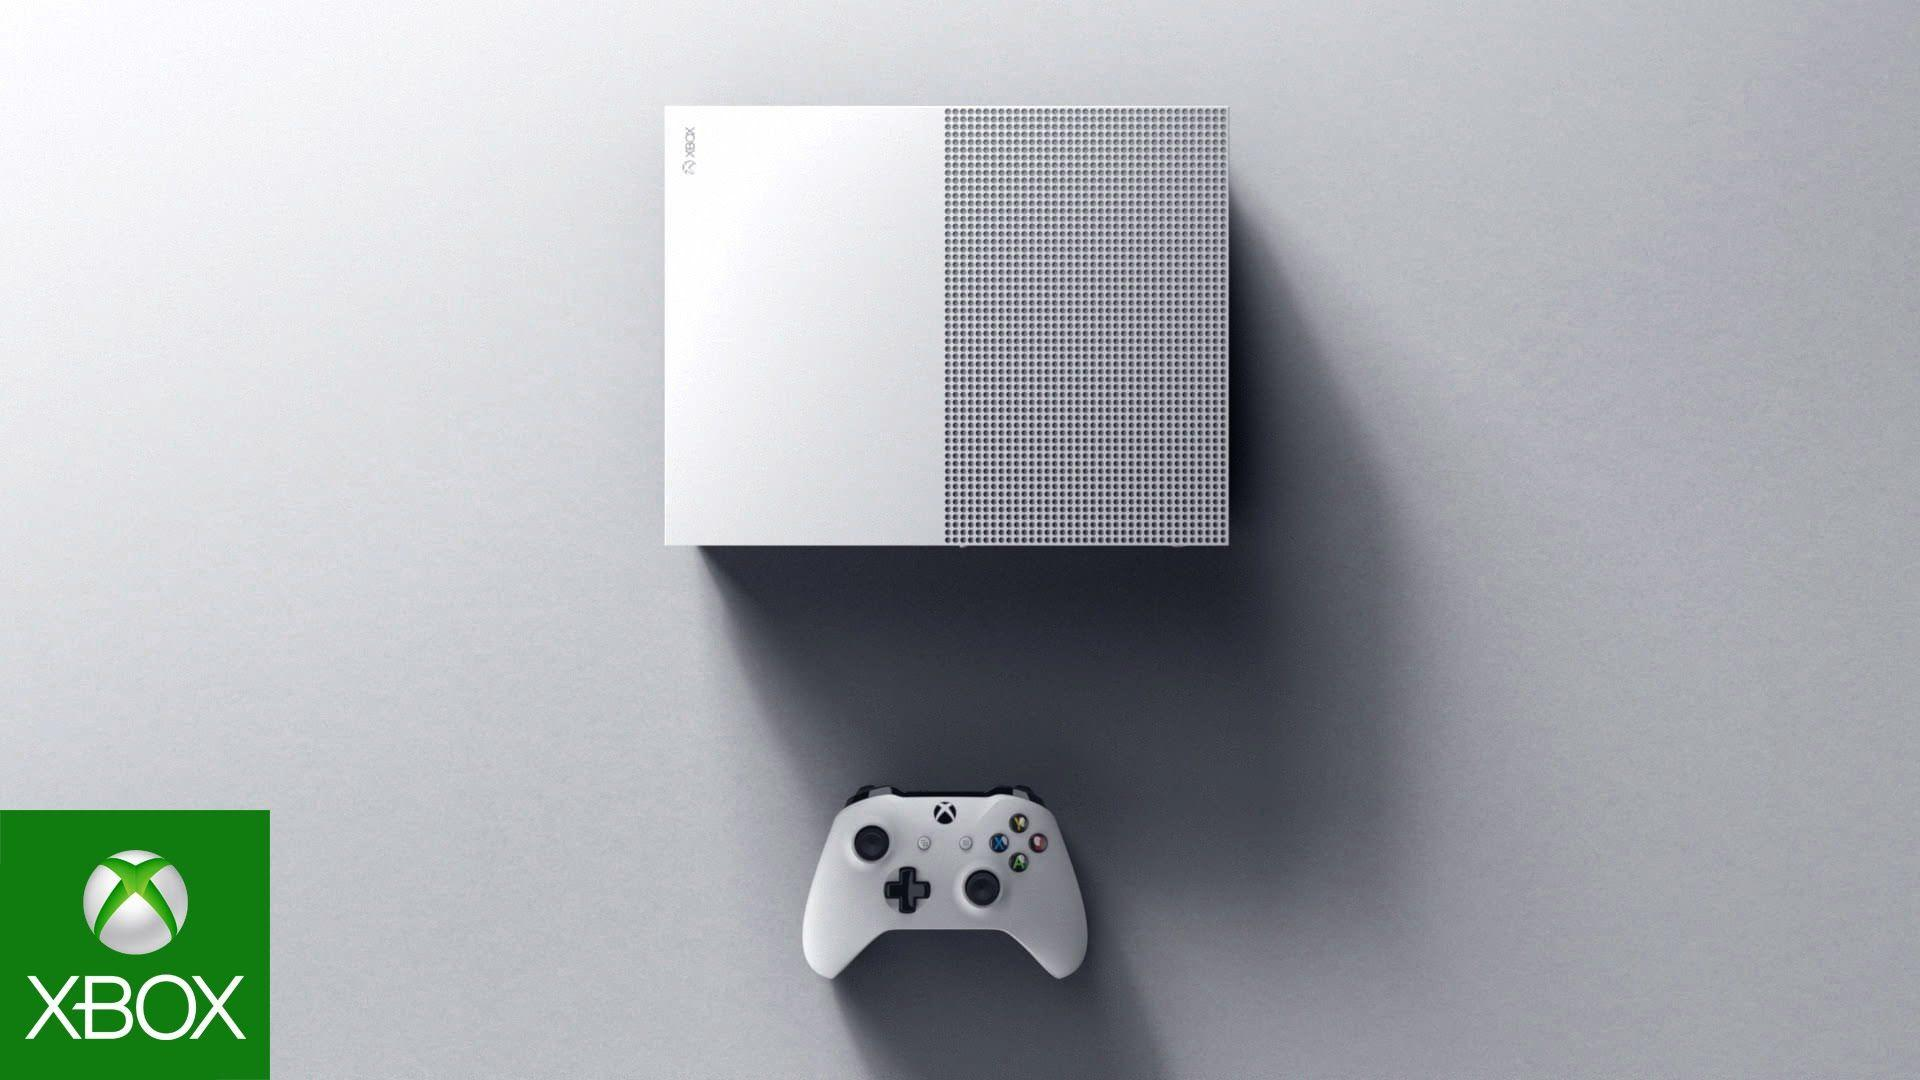 Xbox One S Wallpapers - Wallpaper Cave